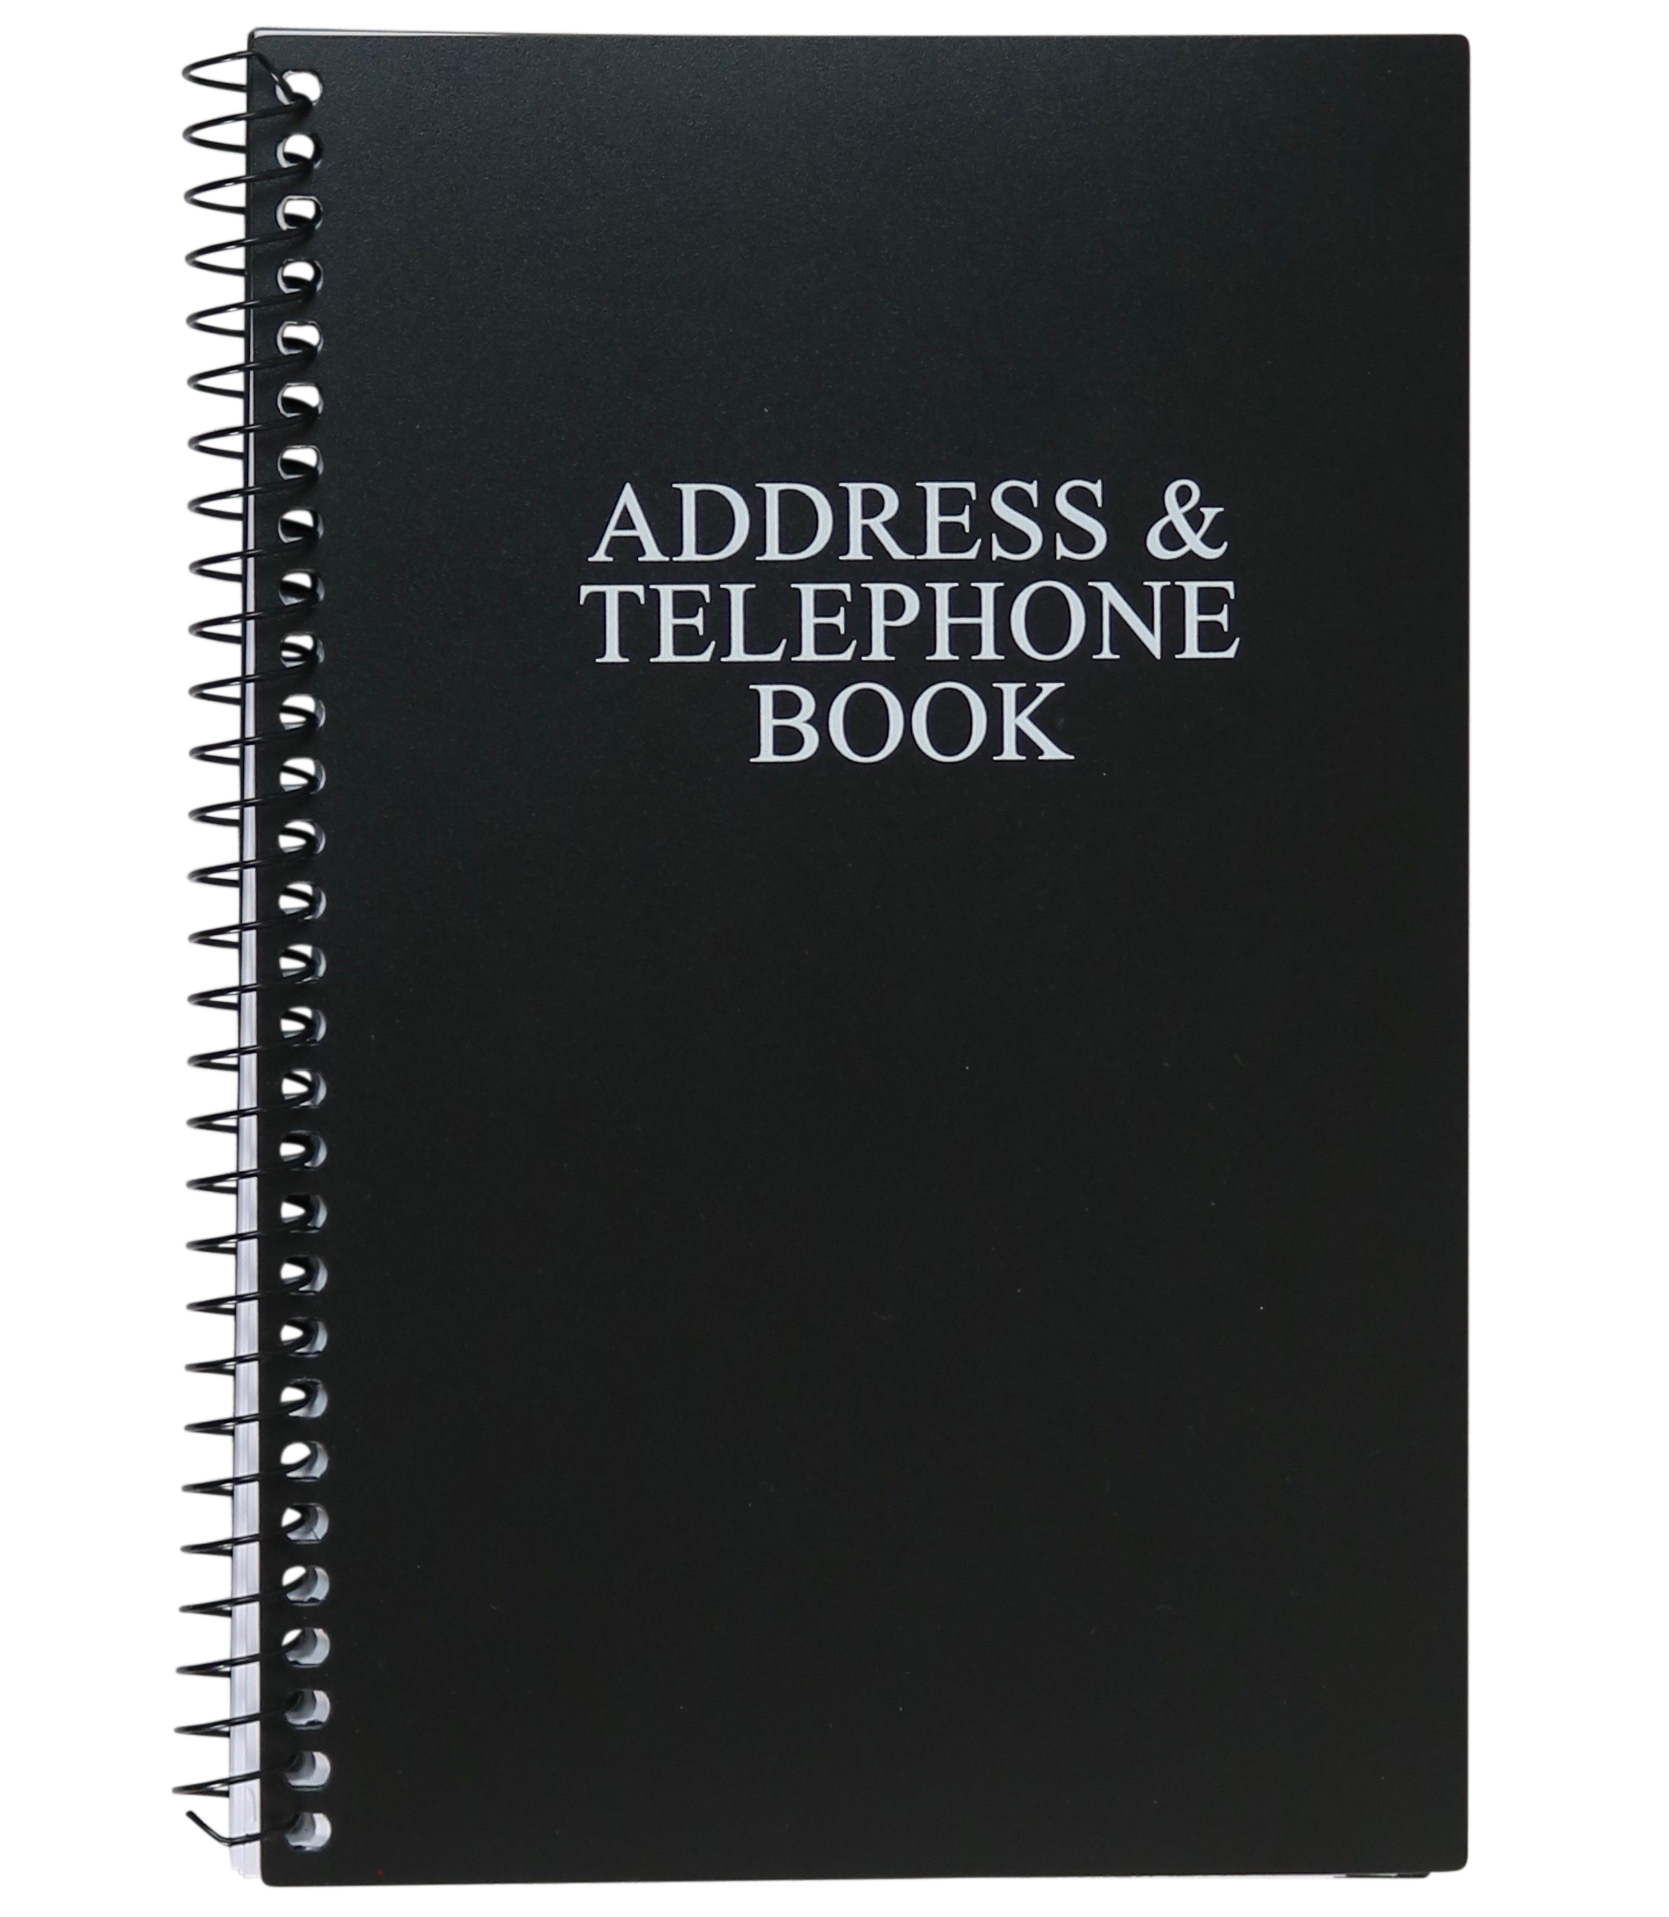 address book main